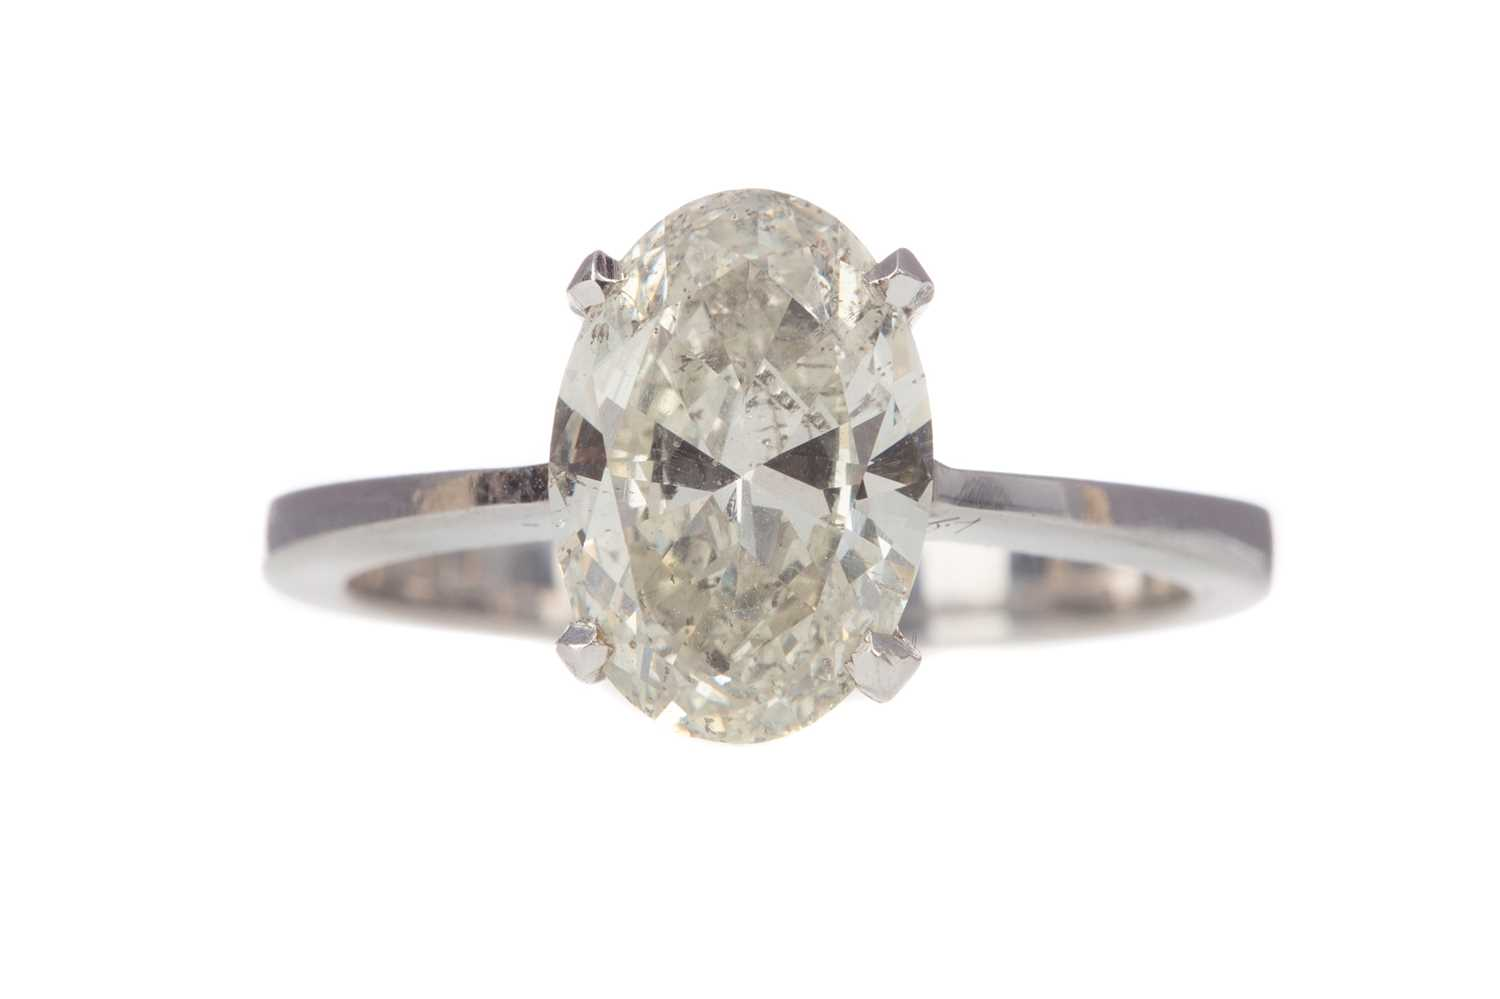 Lot 335 - A CERTIFICATED DIAMOND SOLITAIRE RING